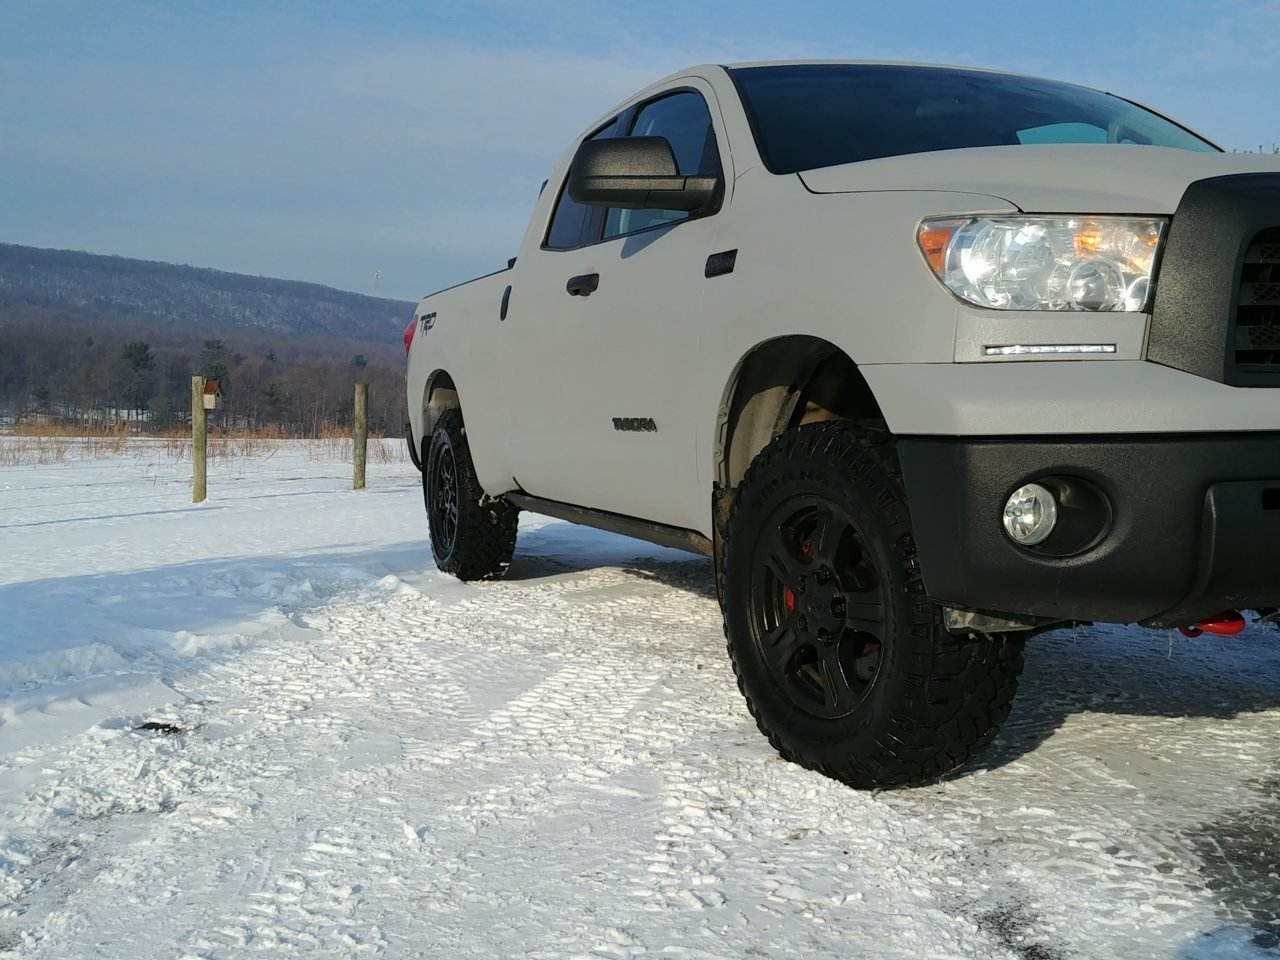 Give Me Your Honest Opinion On The Raptor Liner Look